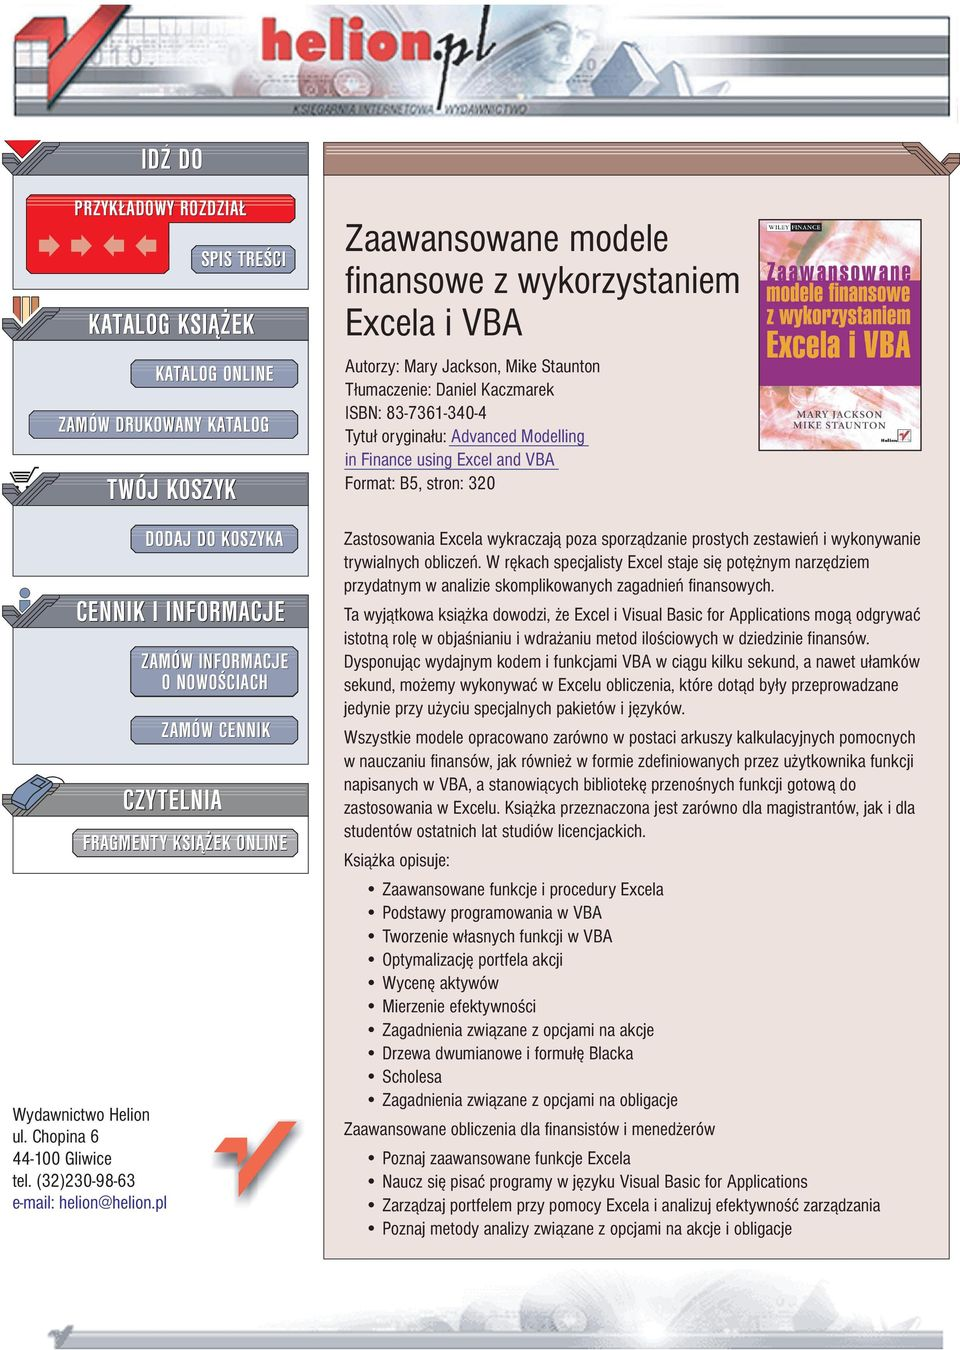 wykorzystaniem Excela i VBA Autorzy: Mary Jackson, Mike Staunton T³umaczenie: Daniel Kaczmarek ISBN: 83-7361-340-4 Tytu³ orygina³u: Advanced Modelling in Finance using Excel and VBA Format: B5,